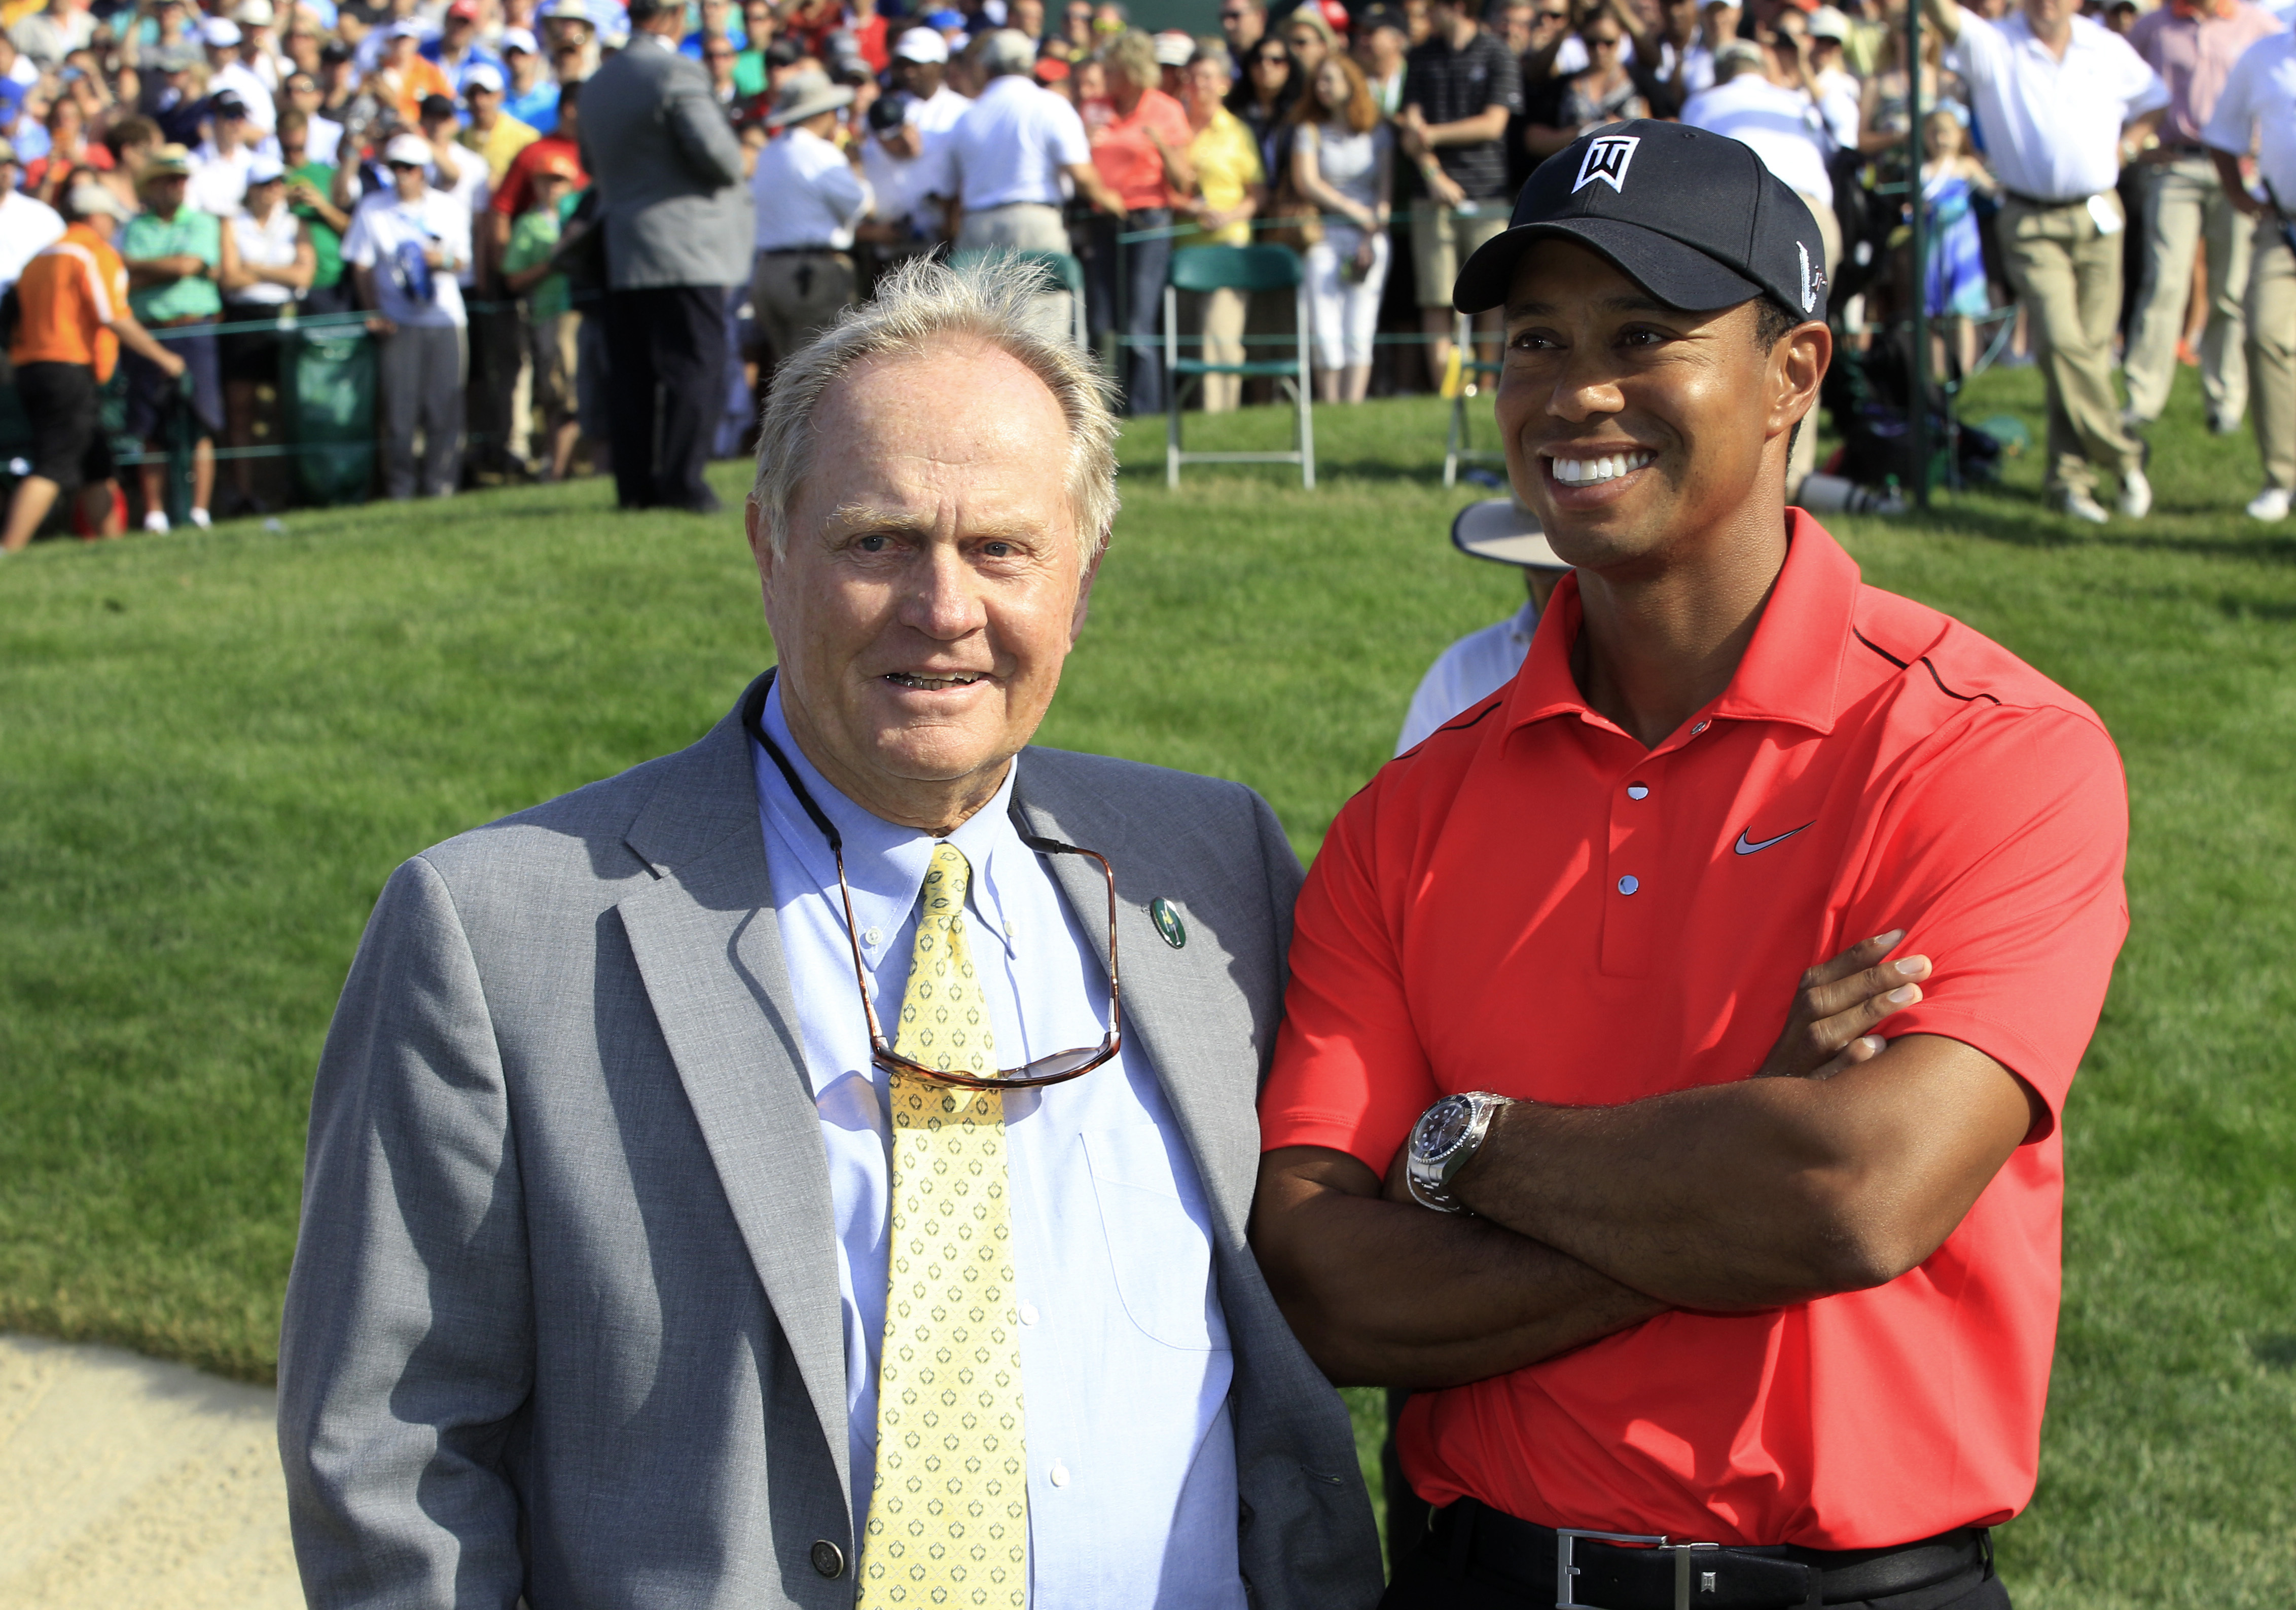 """File-This June 3, 2012, file photo shows Jack Nicklaus, left, and Tiger Woods talking after Woods won the Memorial golf tournament at the Muirfield Village Golf Club in Dublin, Ohio.  Nicklaus says he was """"painting a picture"""" when he suggested after a pra"""